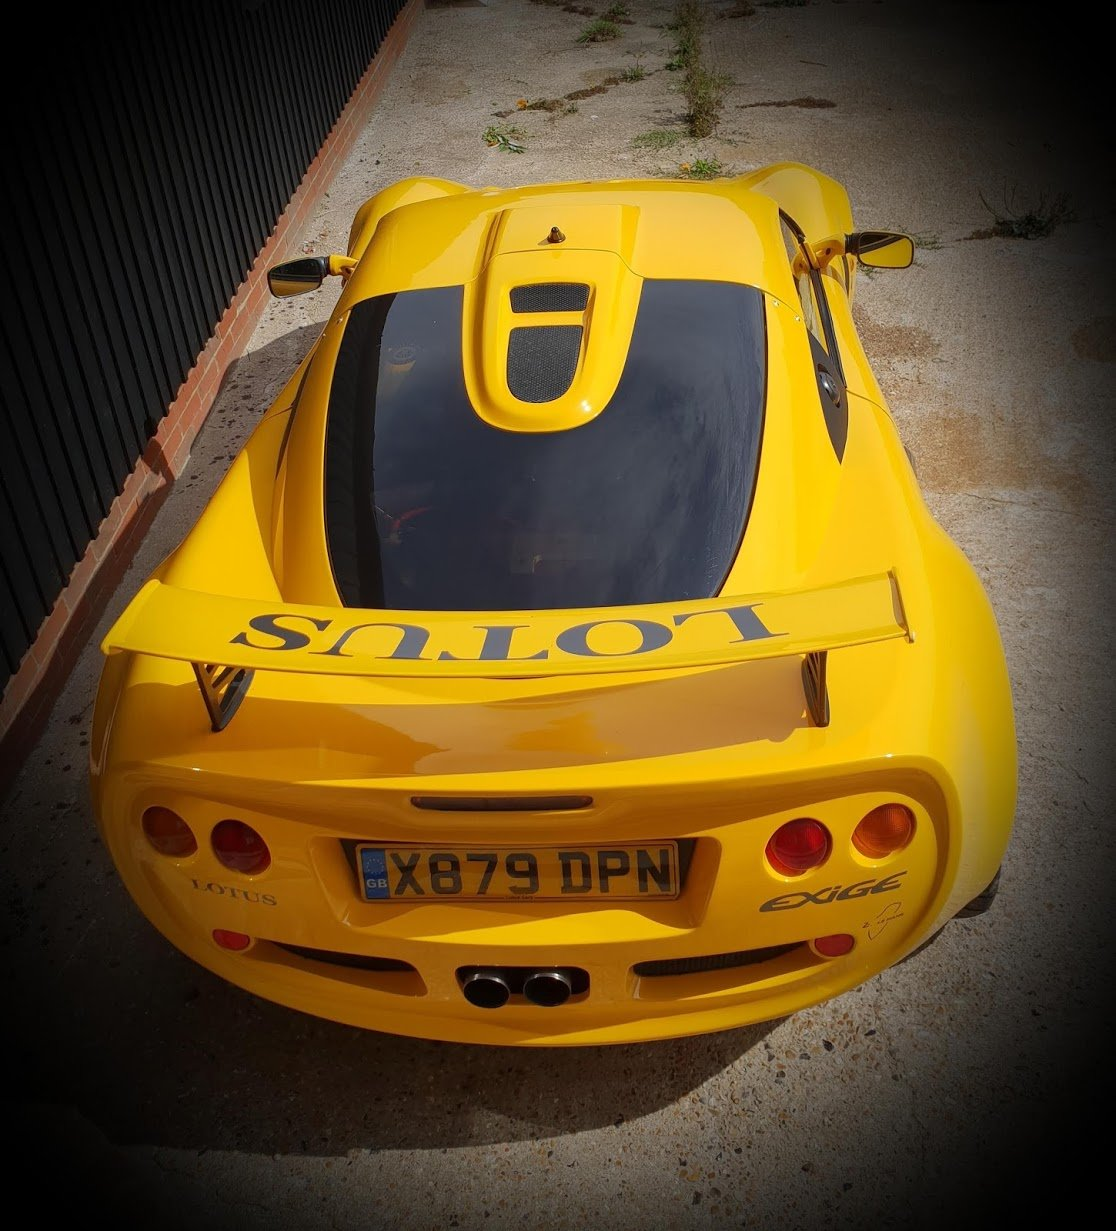 2001 Lotus Exige S1 - Honda K20 Supercharged/Chargecool For Sale (picture 2 of 6)